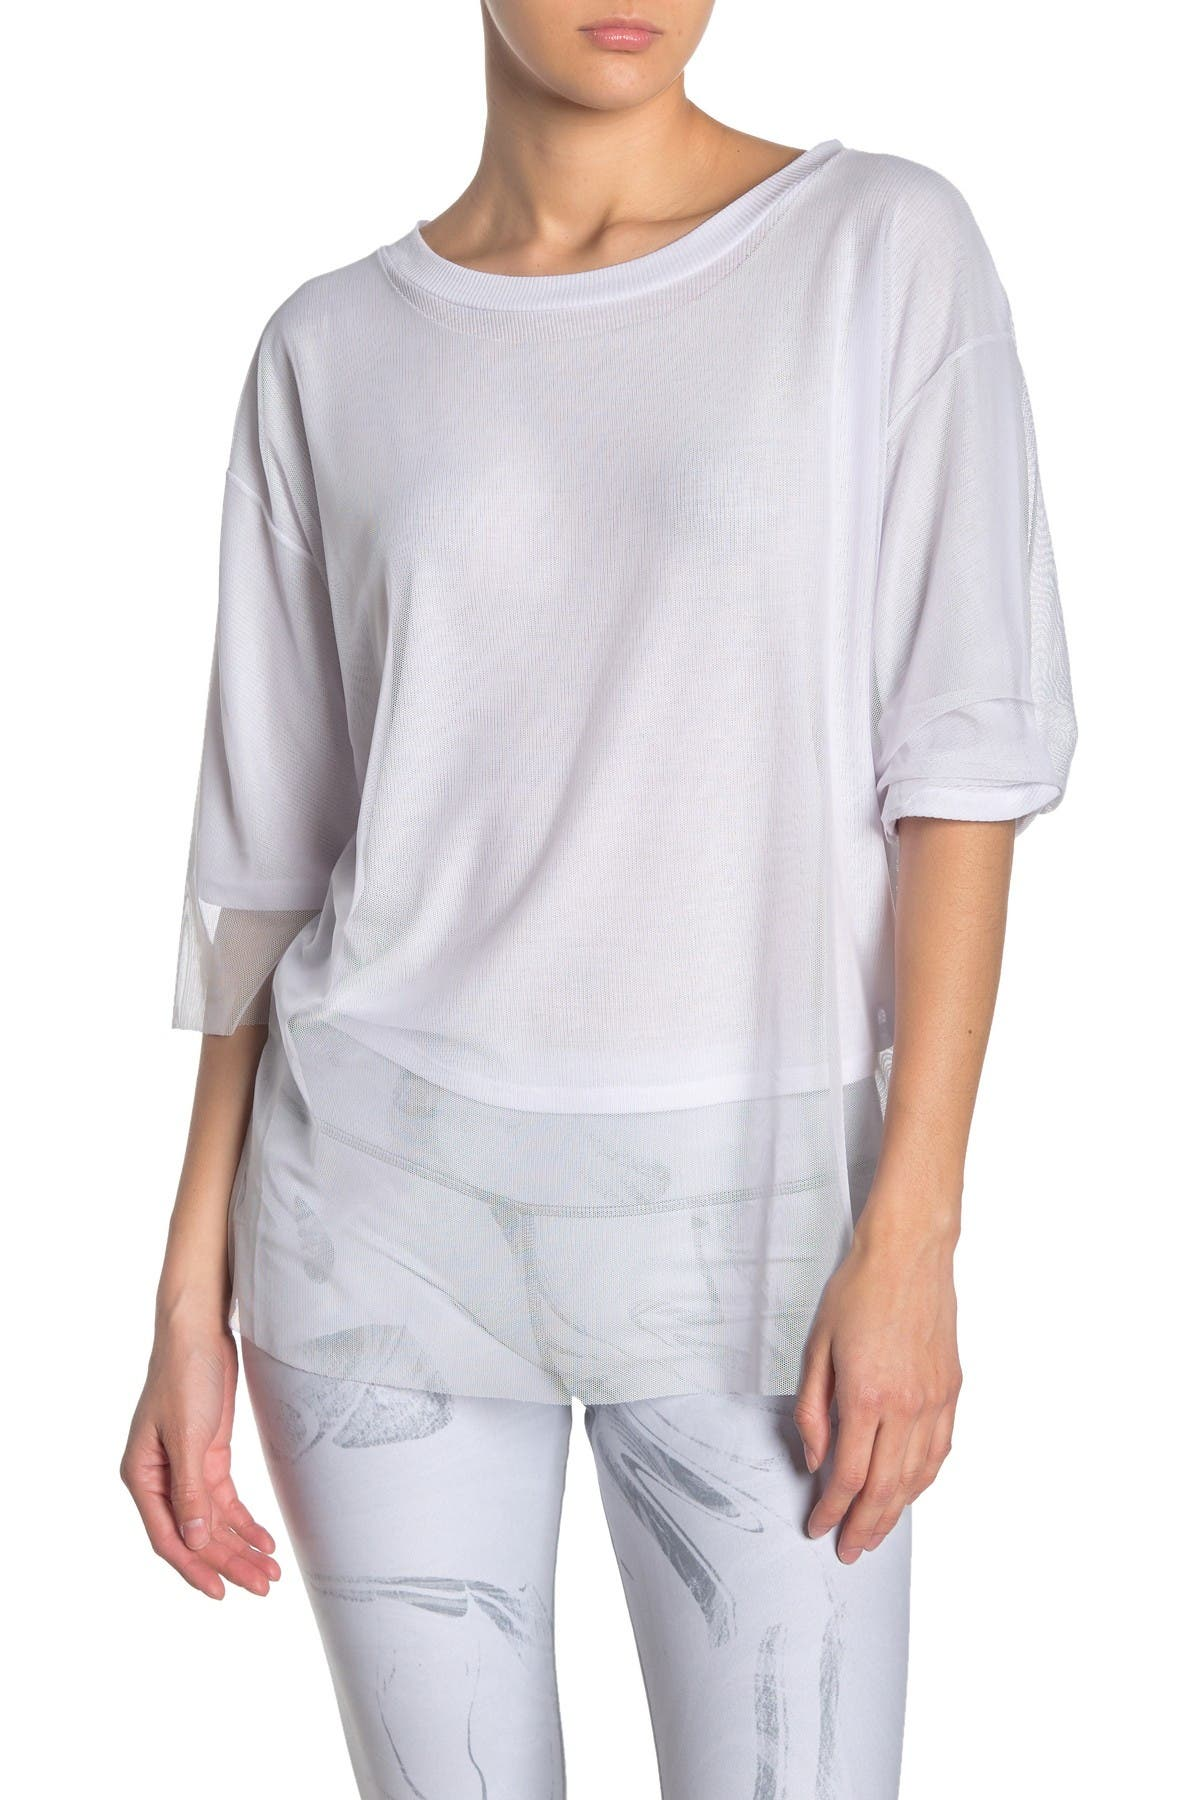 Image of Alo Layer-Up Mesh Overlay T-Shirt